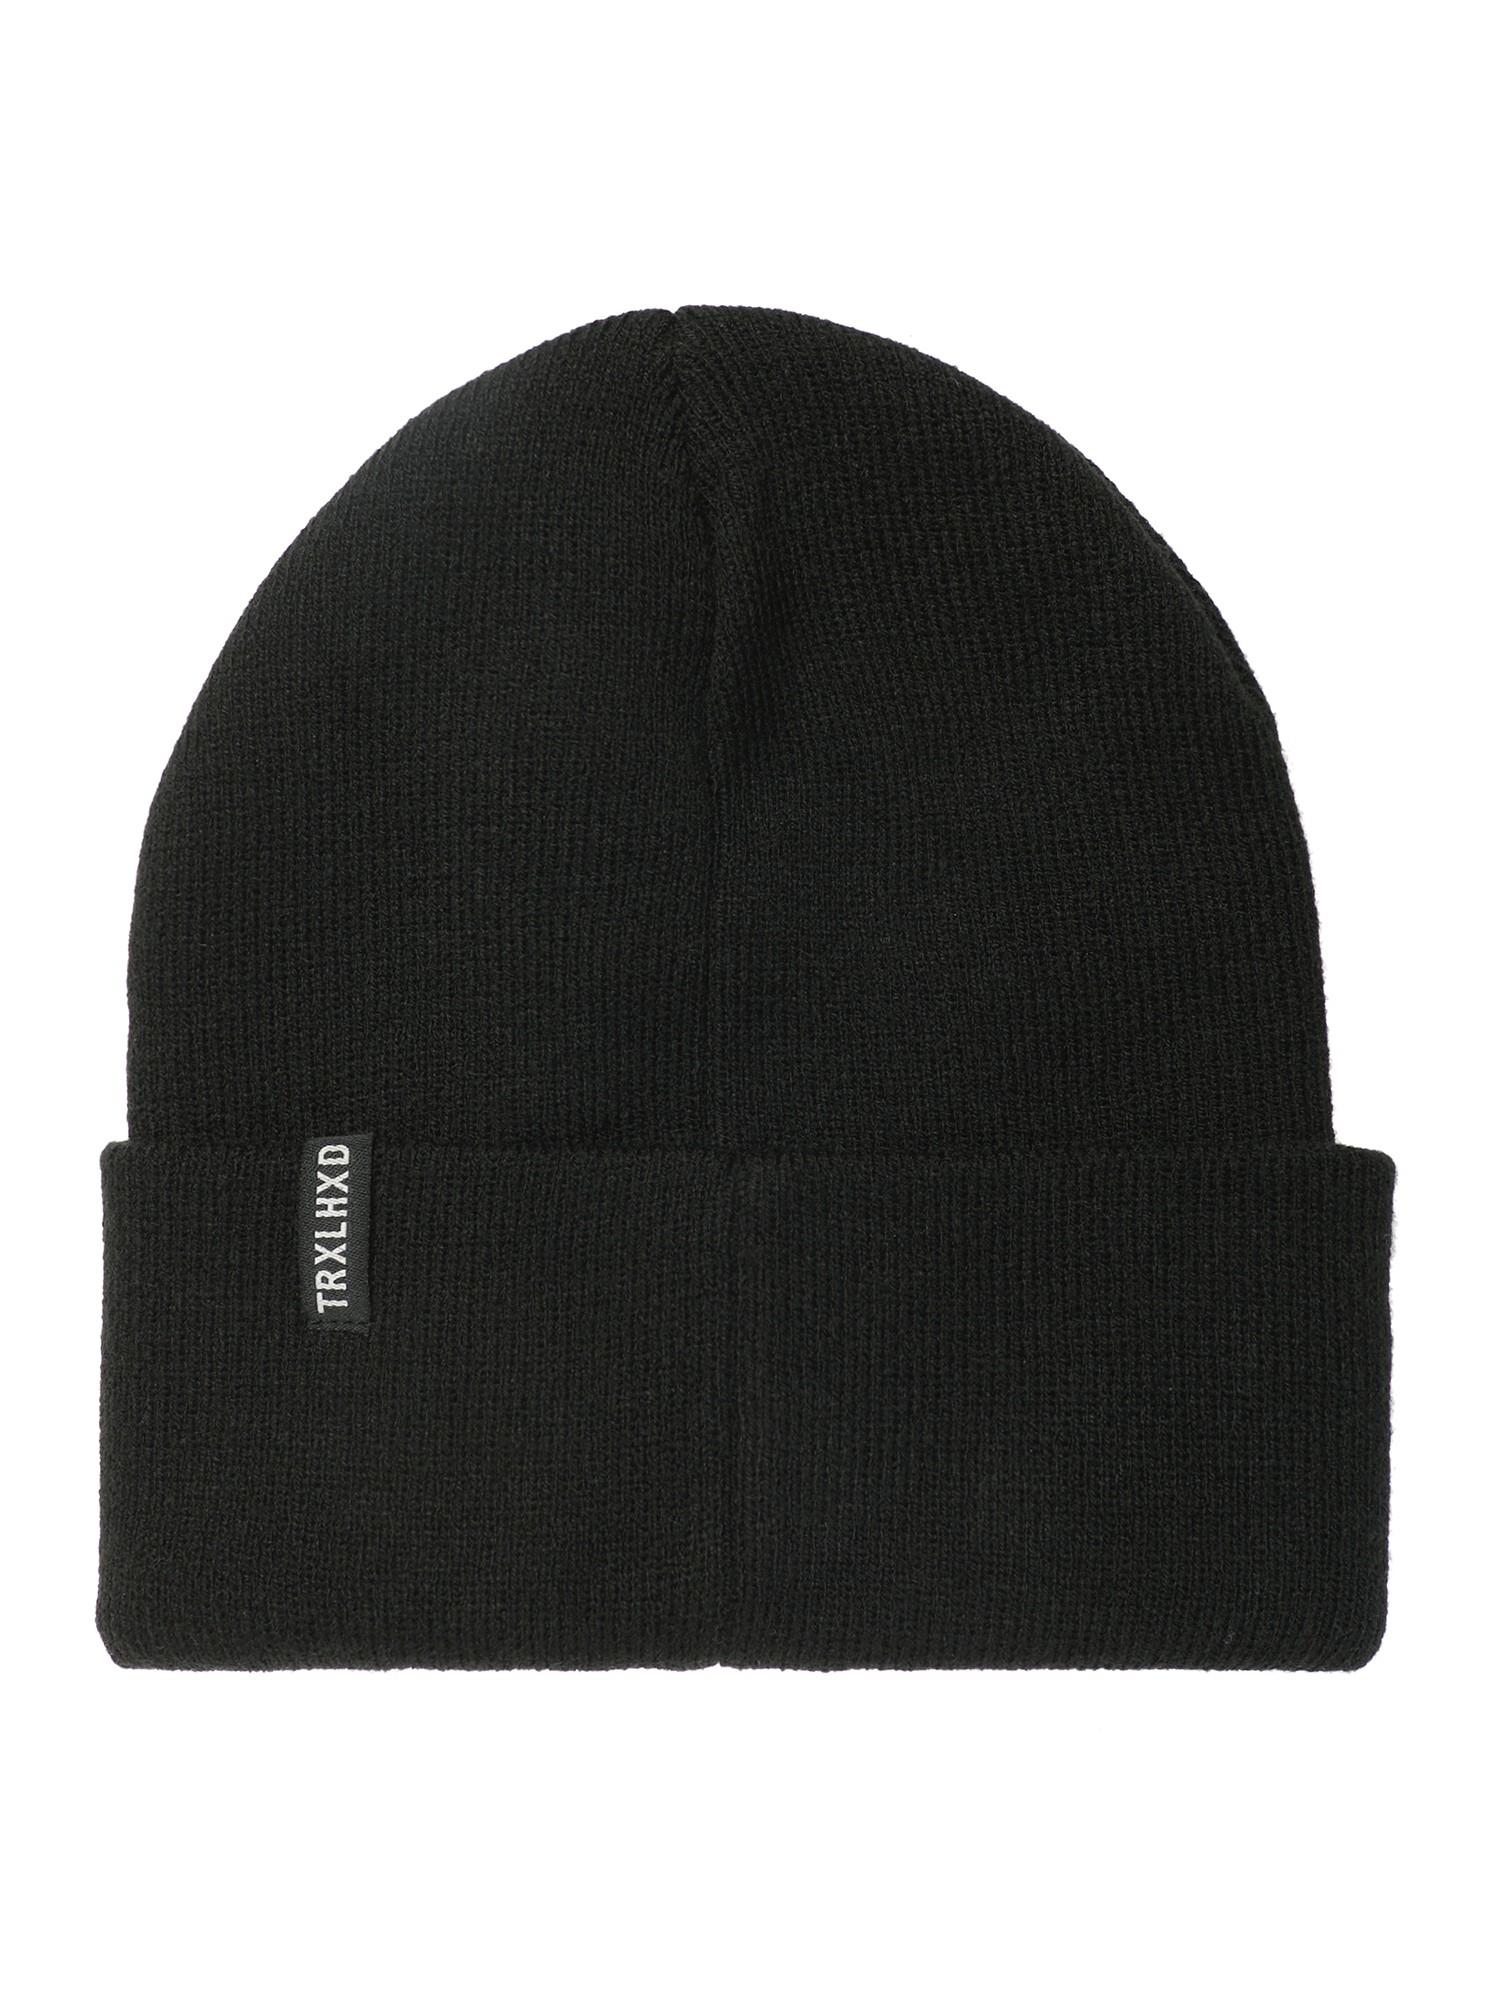 Шапка TRAILHEAD HAT19-LBL-ELITE-BK, HAT19-LBL-ELITE, фото 3